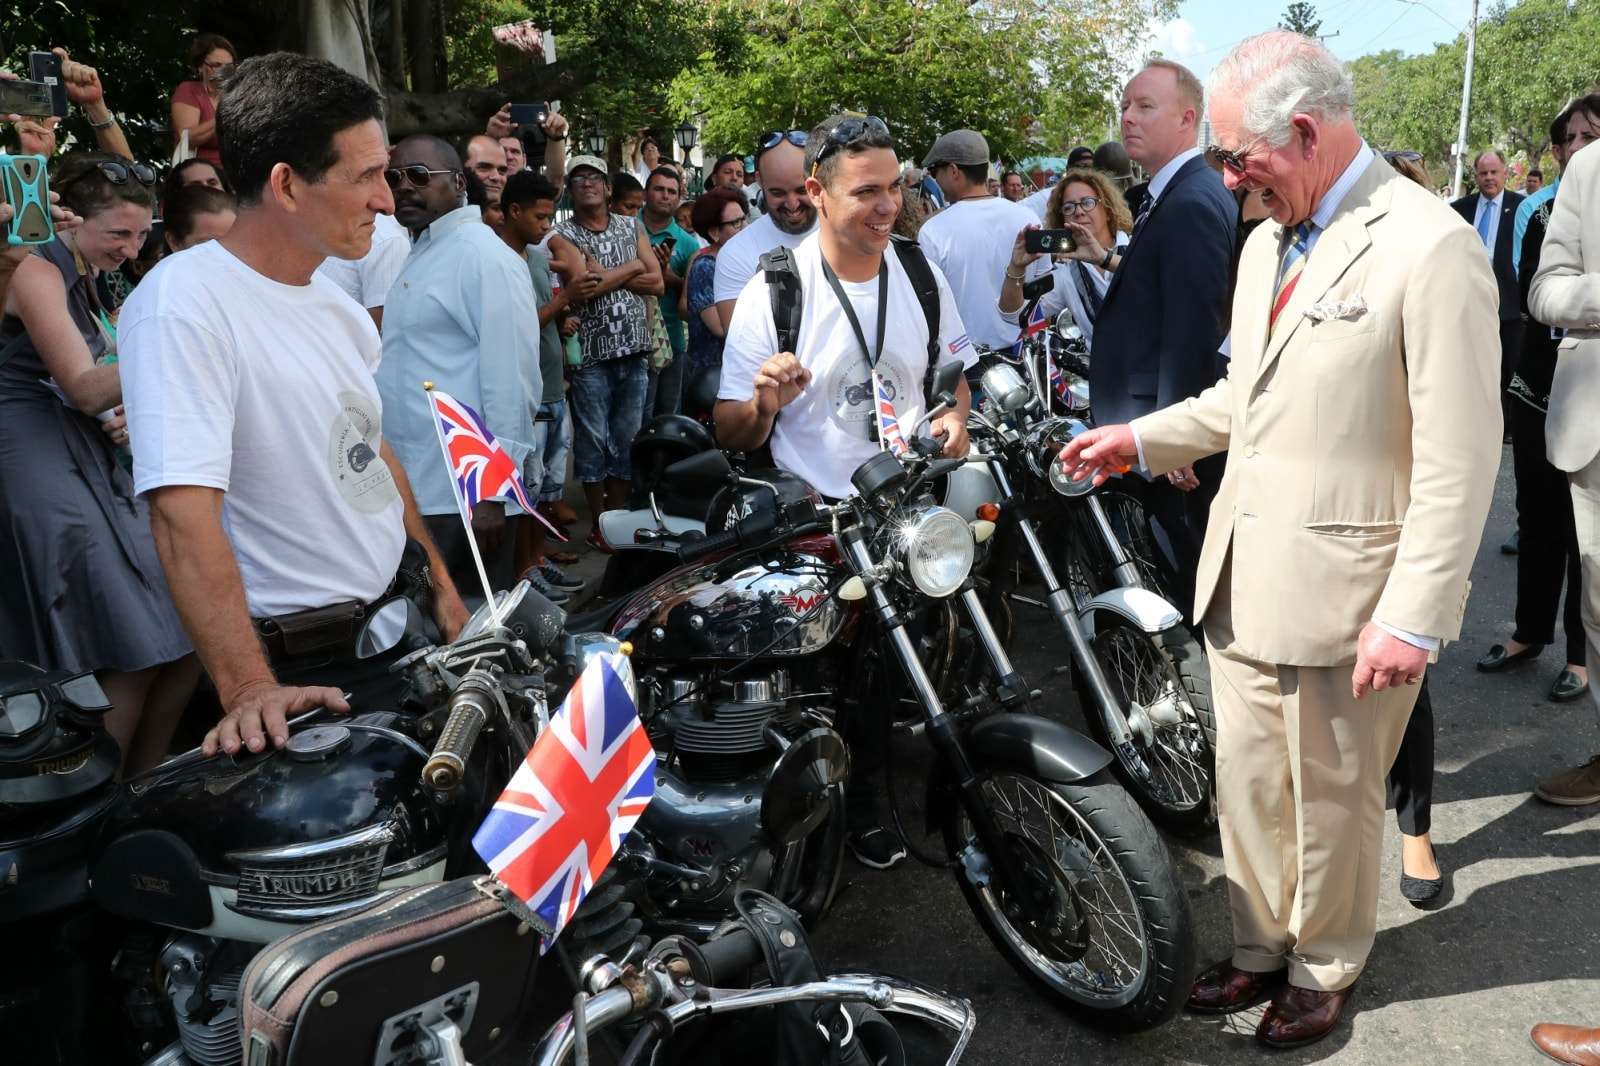 Britain's Prince Charles meets local bikers at a British Classic Car event in Havana, Cuba March 26, 2019. Chris Jackson/Pool via REUTERS